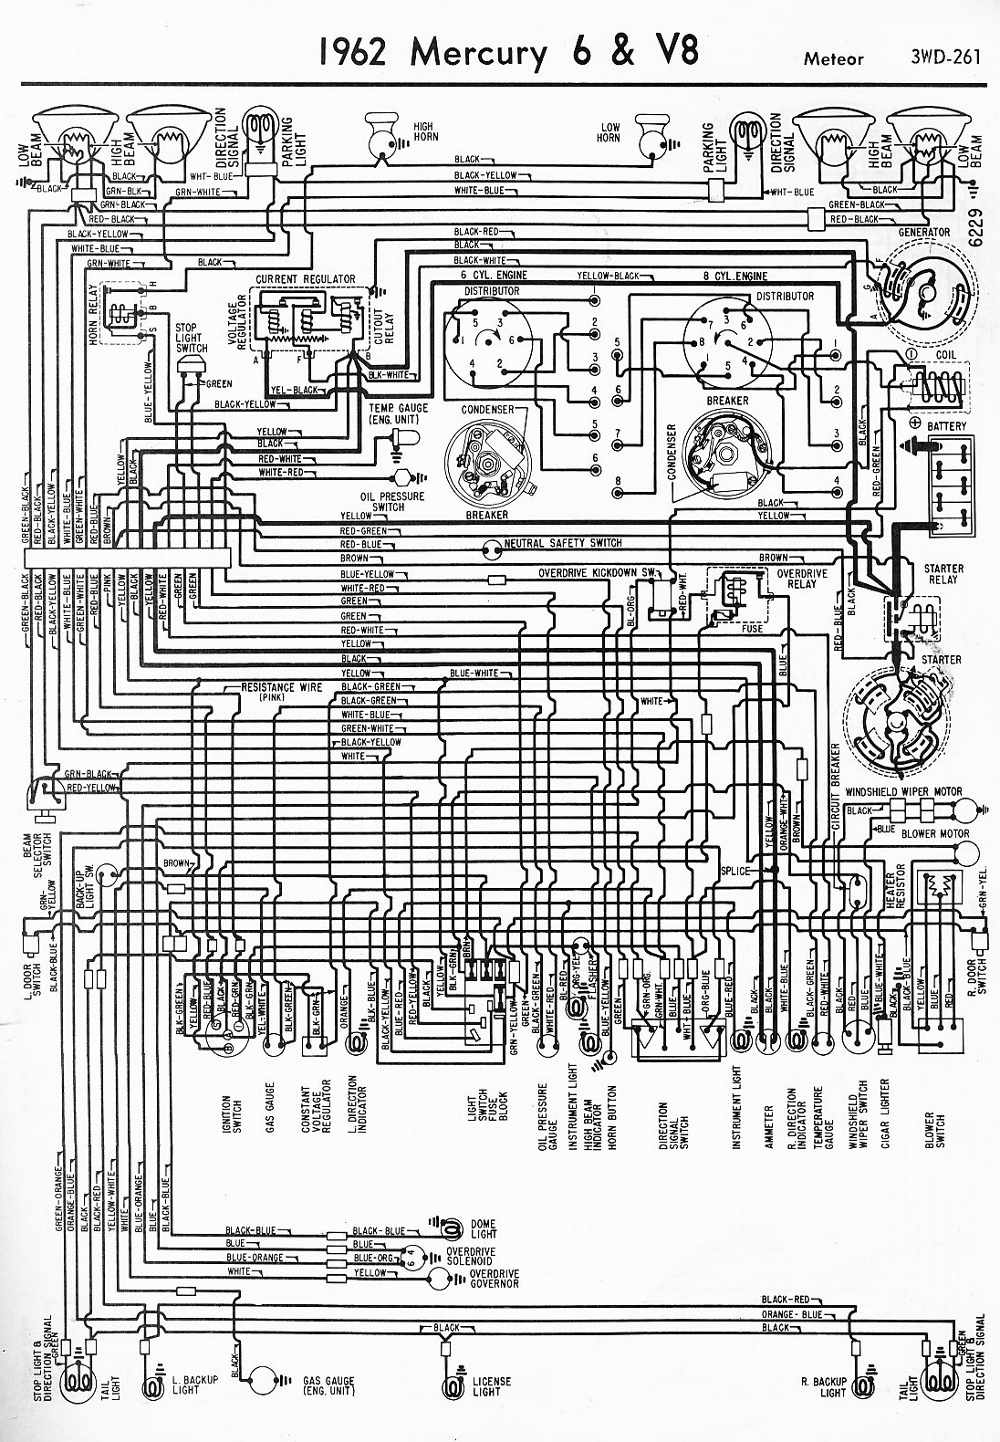 1961 Ford Econoline Wiring Diagram Trusted Schematics 1940 Truck Diagrams Www Topsimages Com Pickup